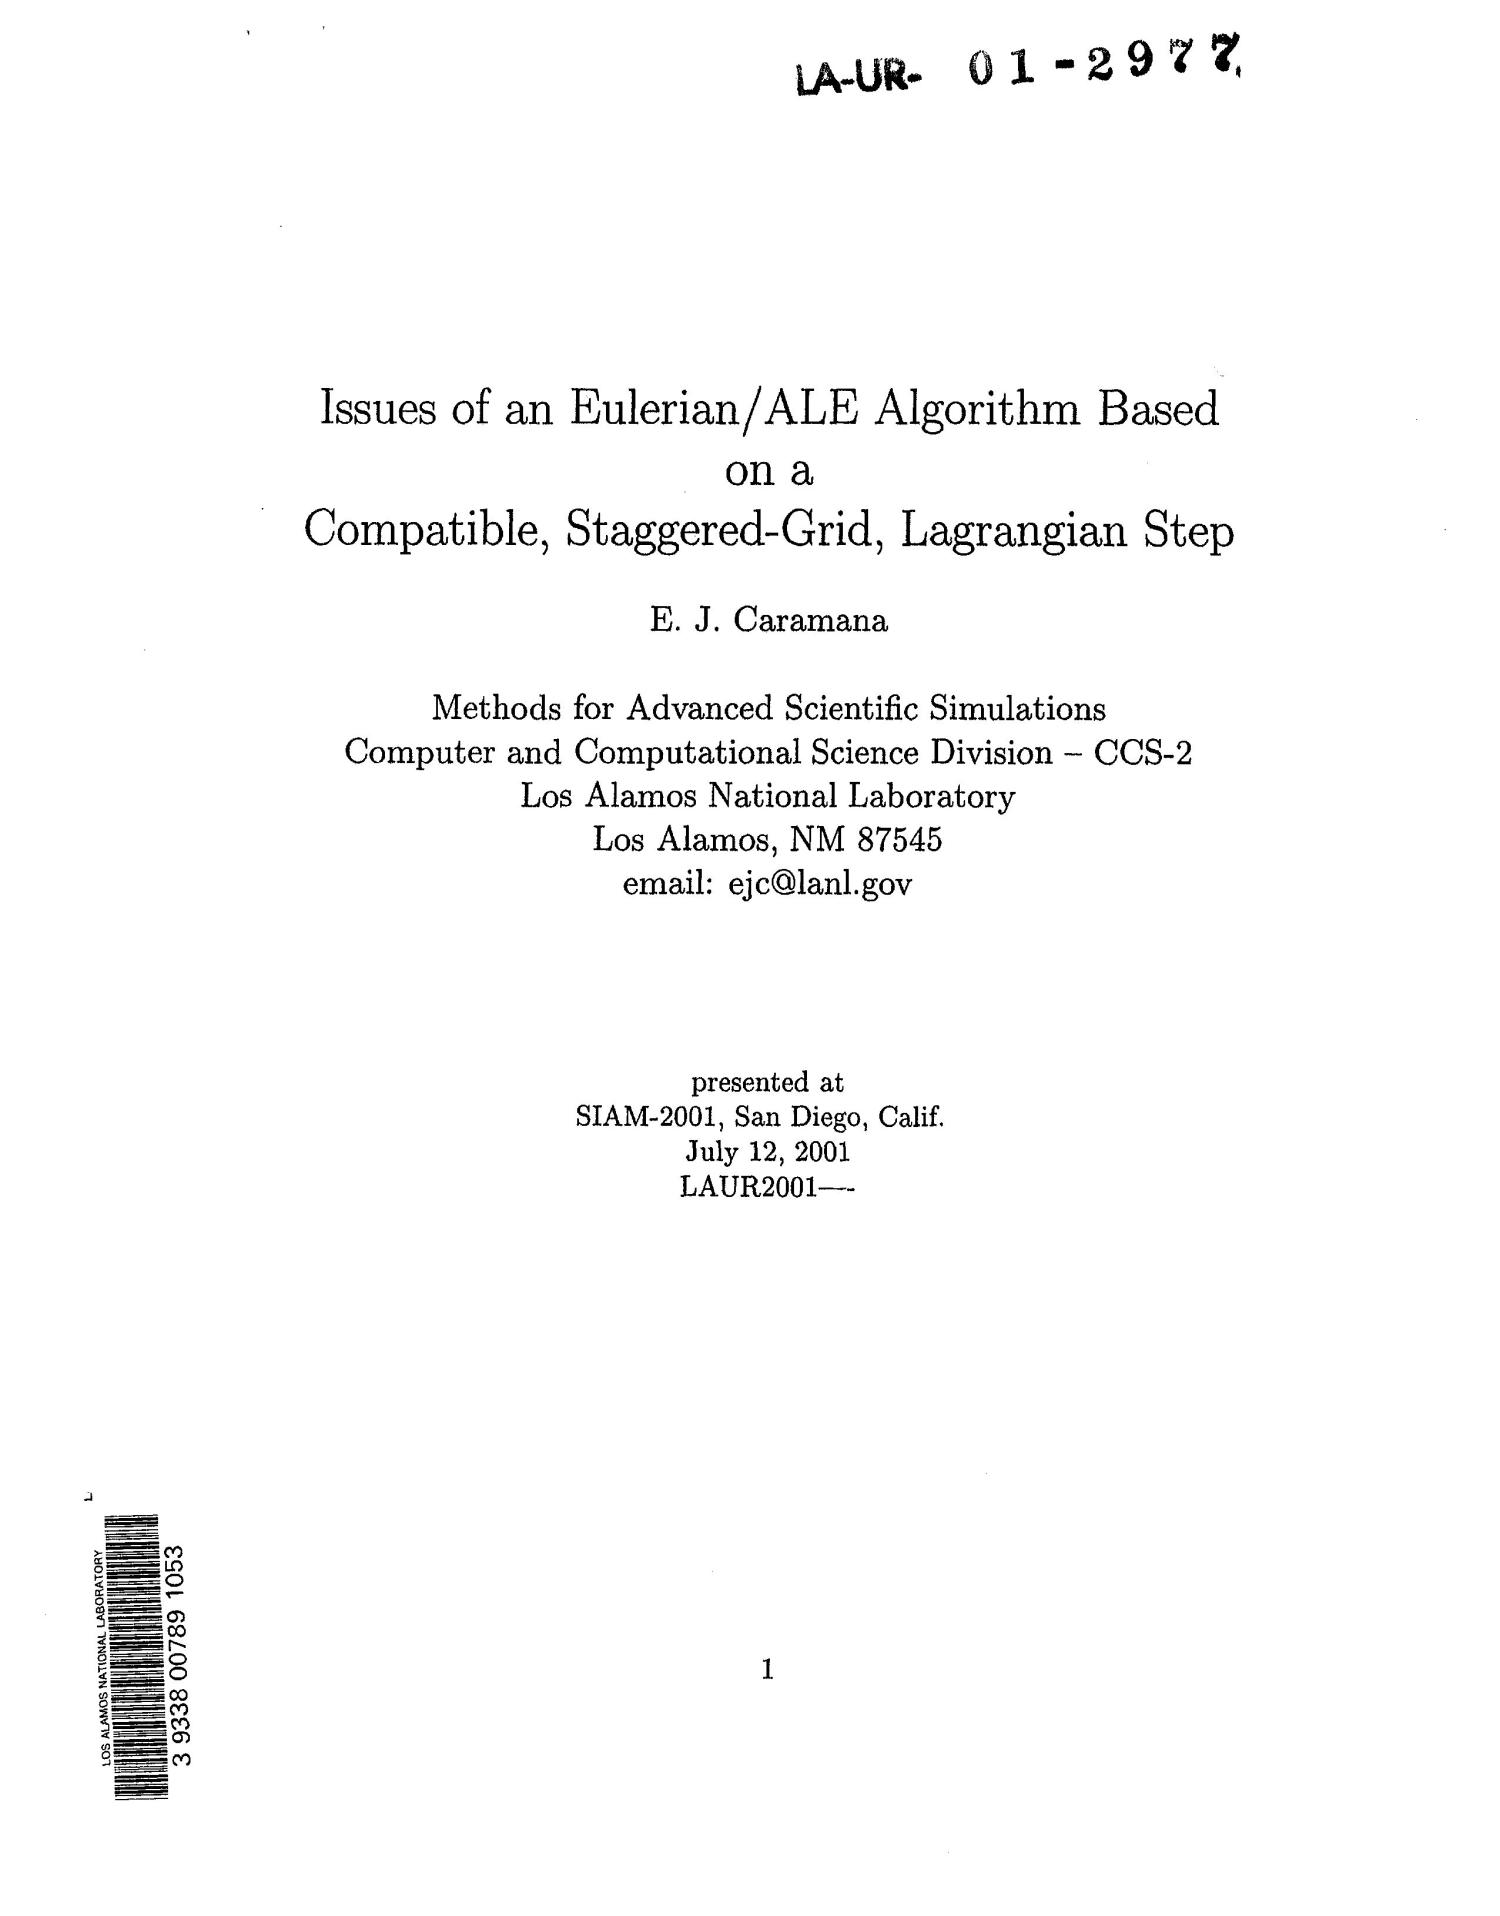 Issues of an Eulerian/ALE algorithm based on a compatible, staggered